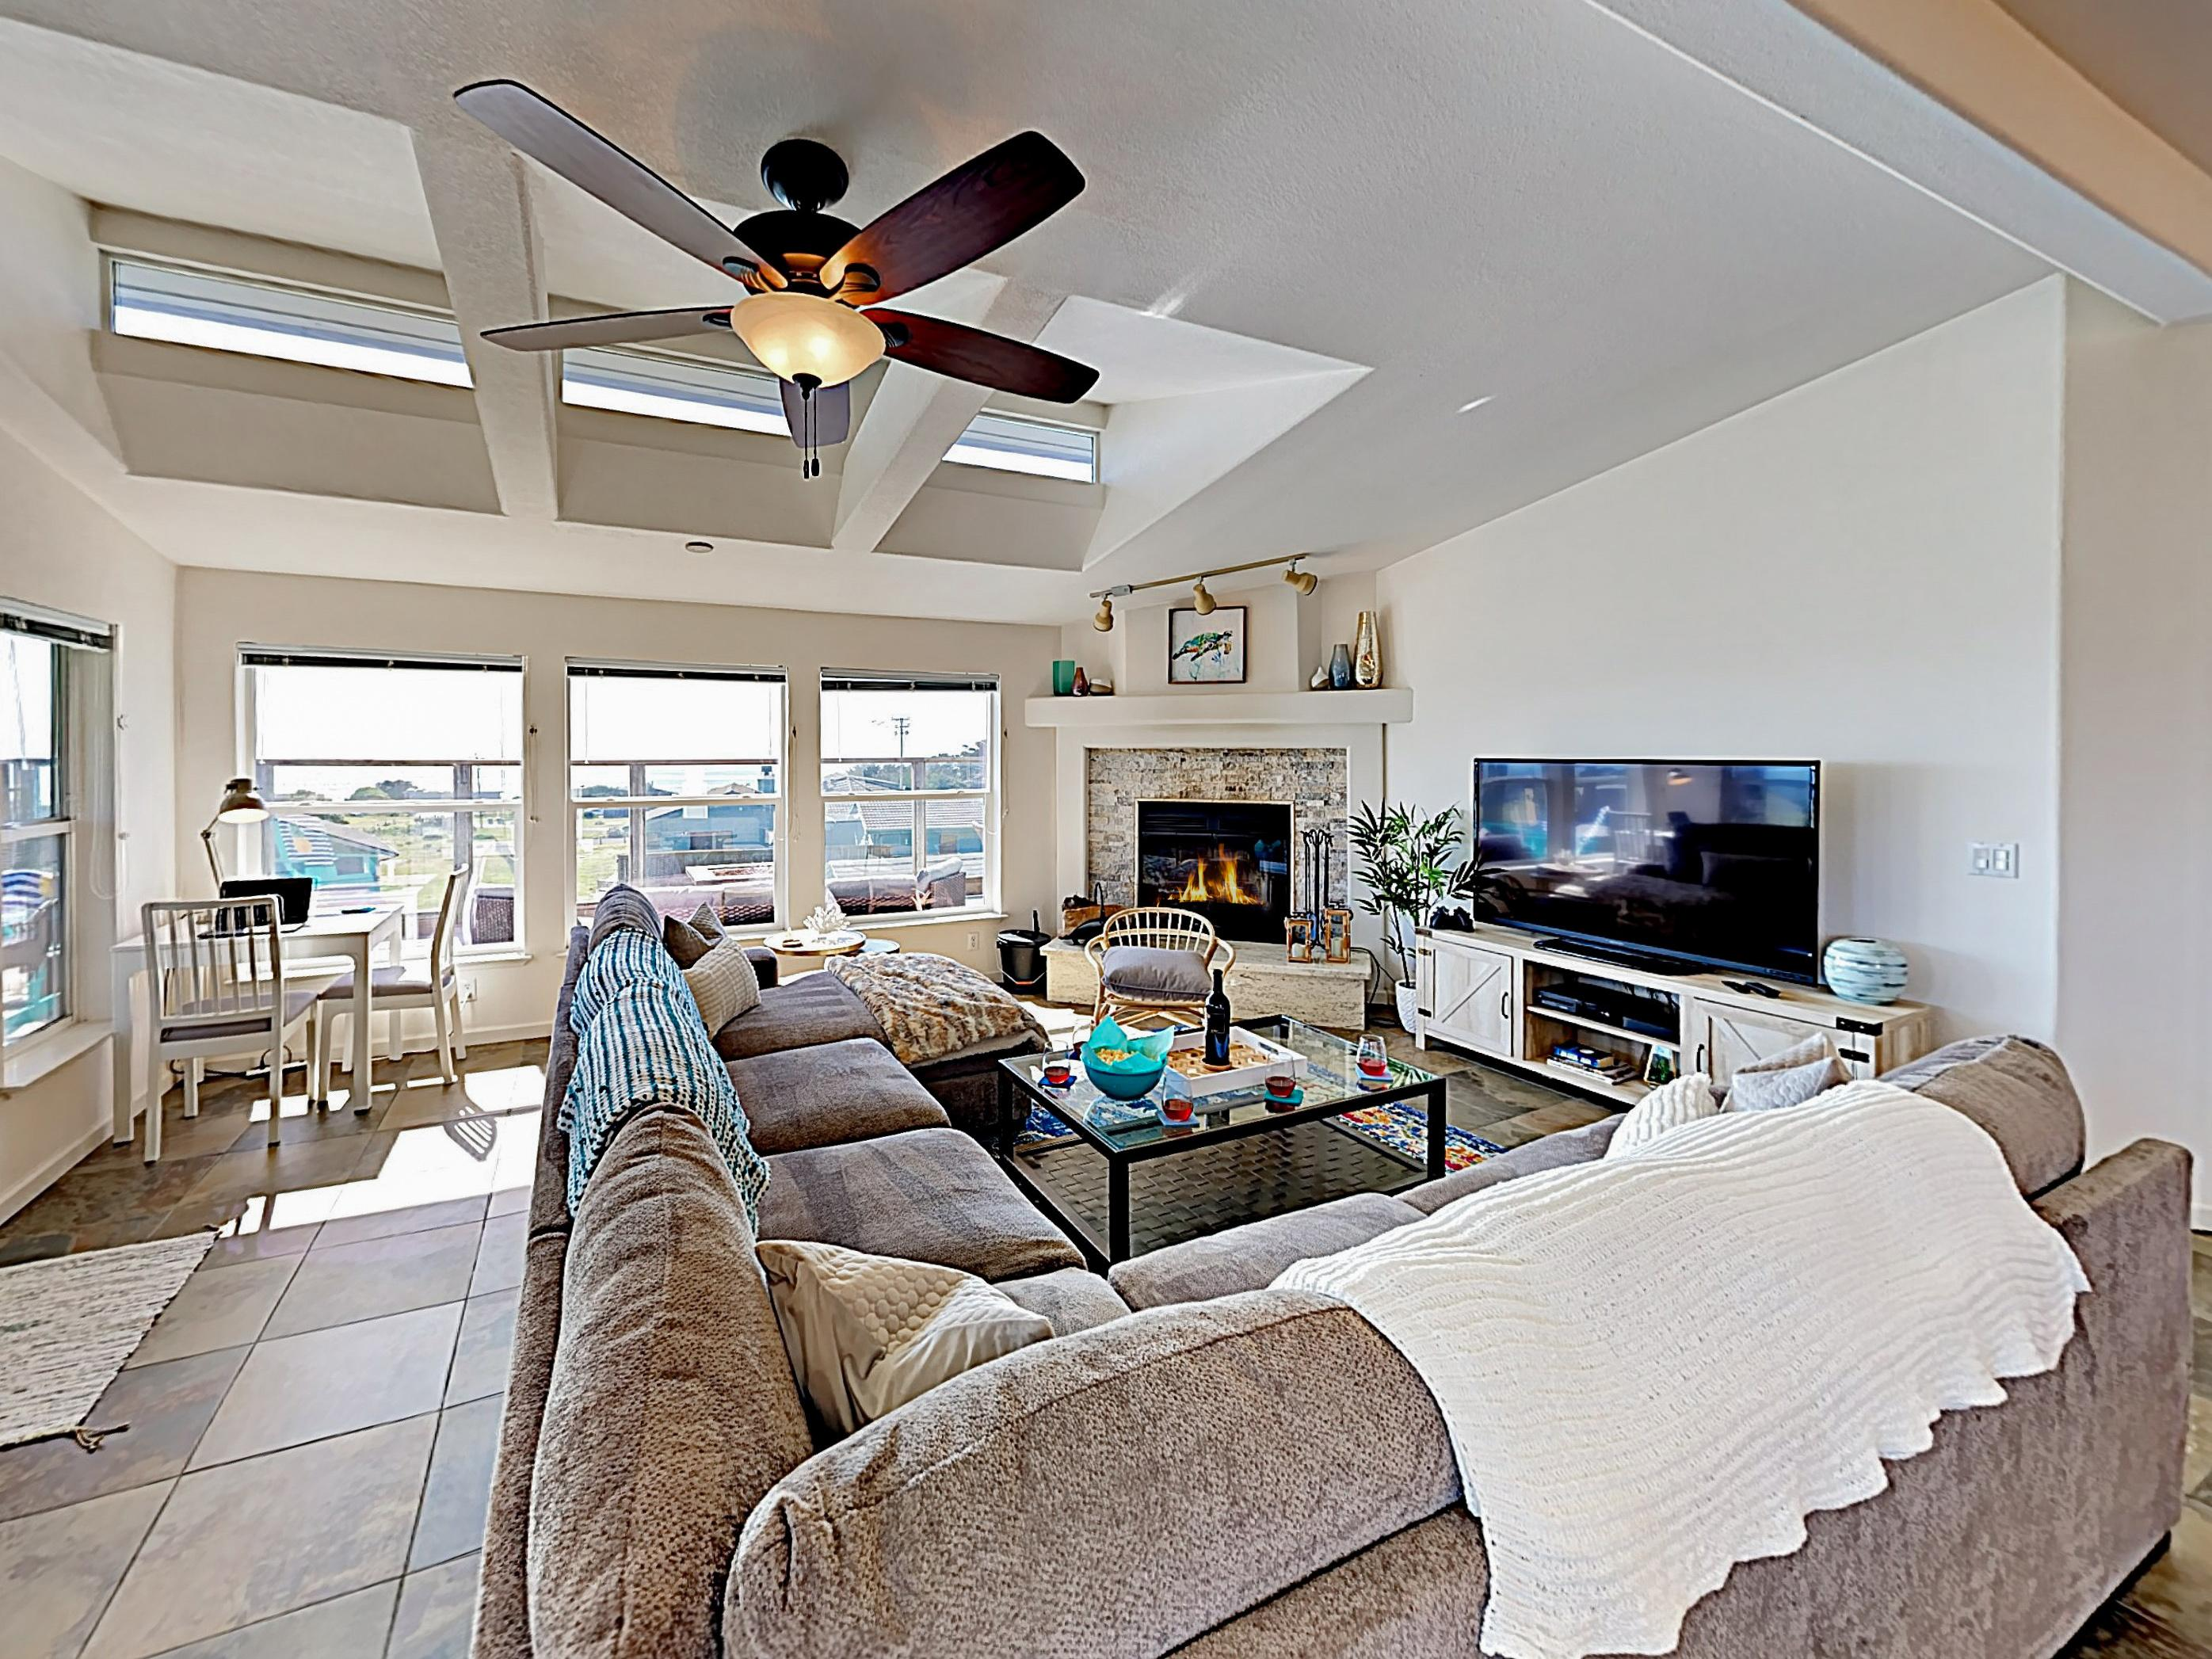 Vaulted ceilings and large windows create a stunning open living area.